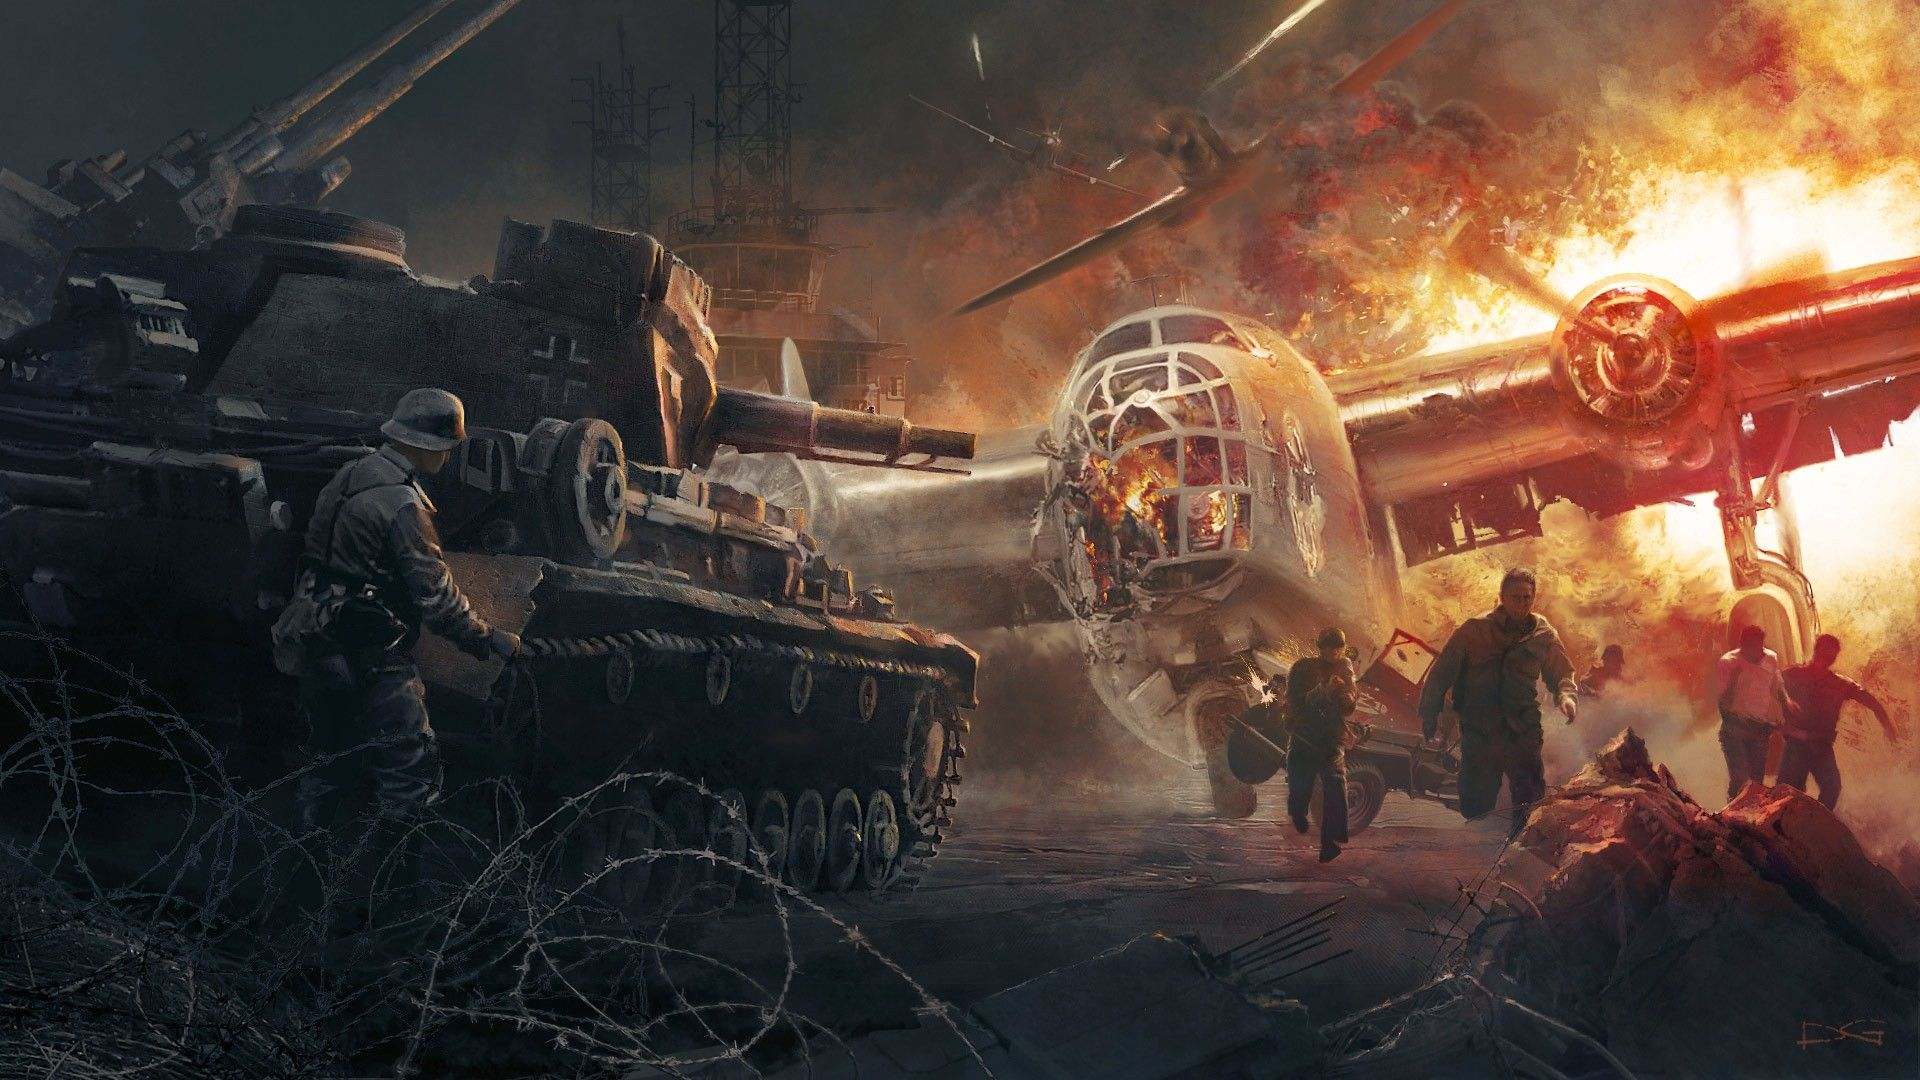 World War 2 Tank Wallpaper For Android On Wallpaper 1080p Hd